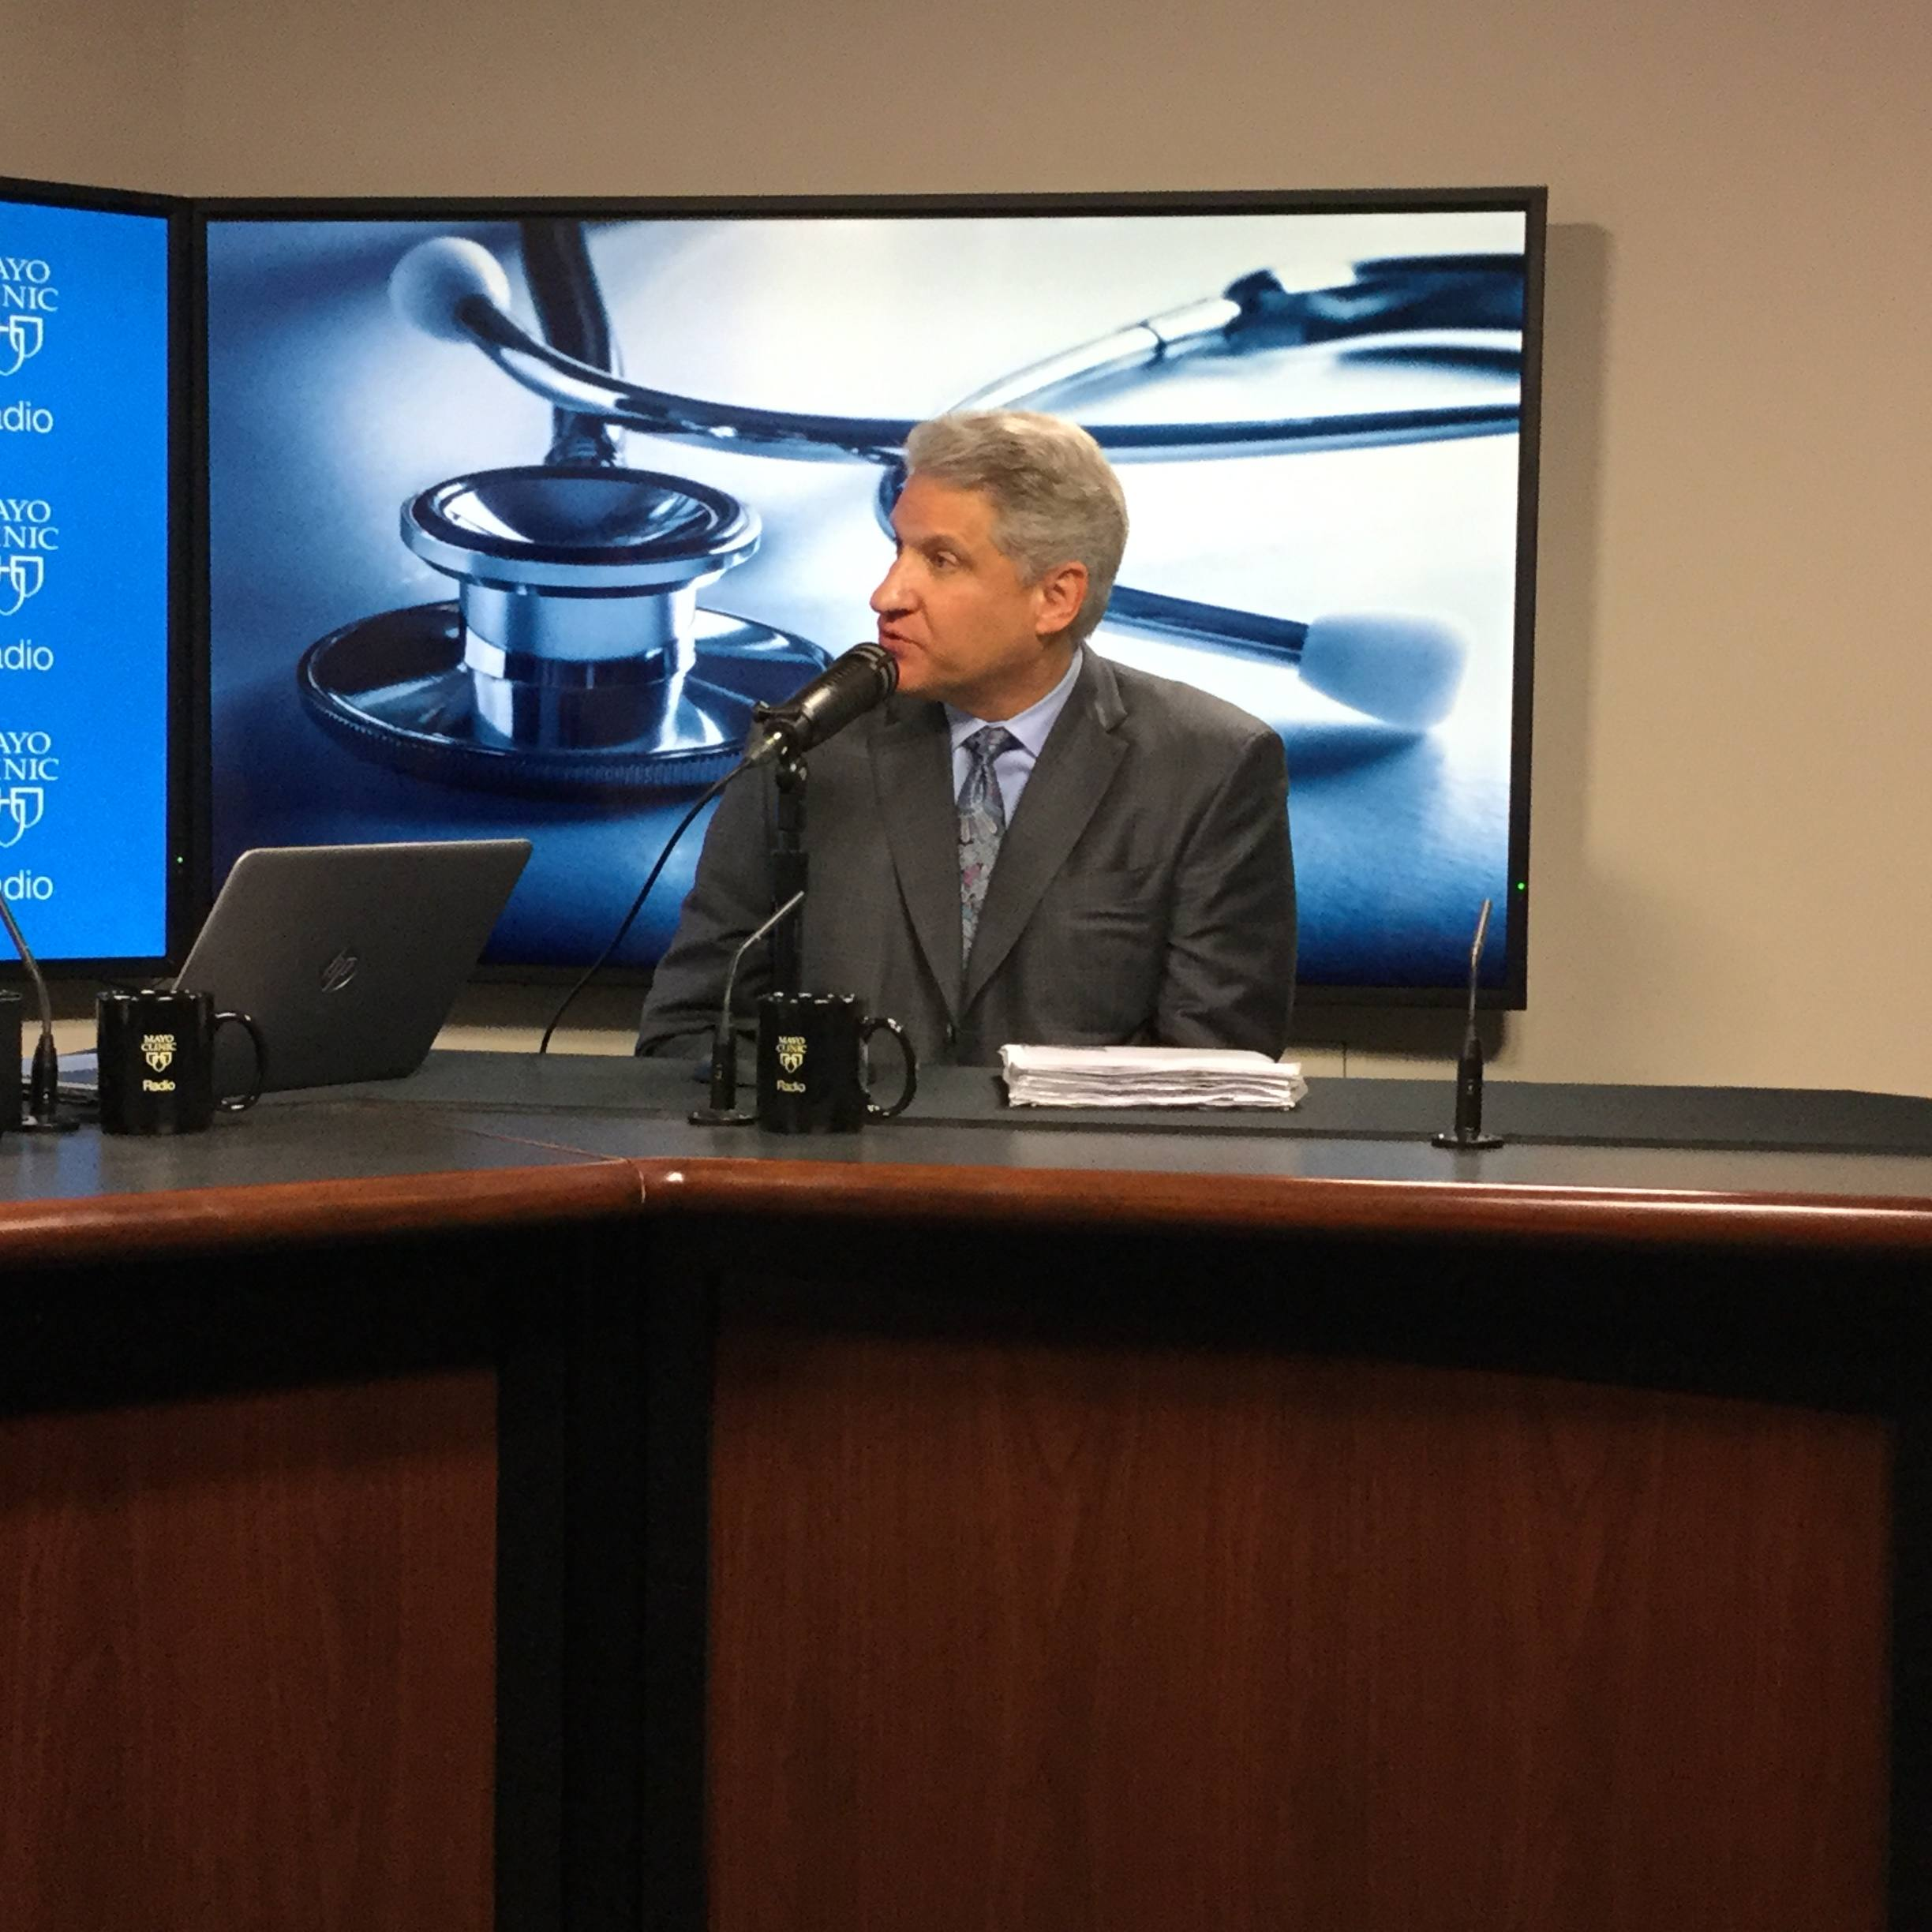 Dr. Robert Brown, Jr. being interviewed on Mayo Clinic Radio